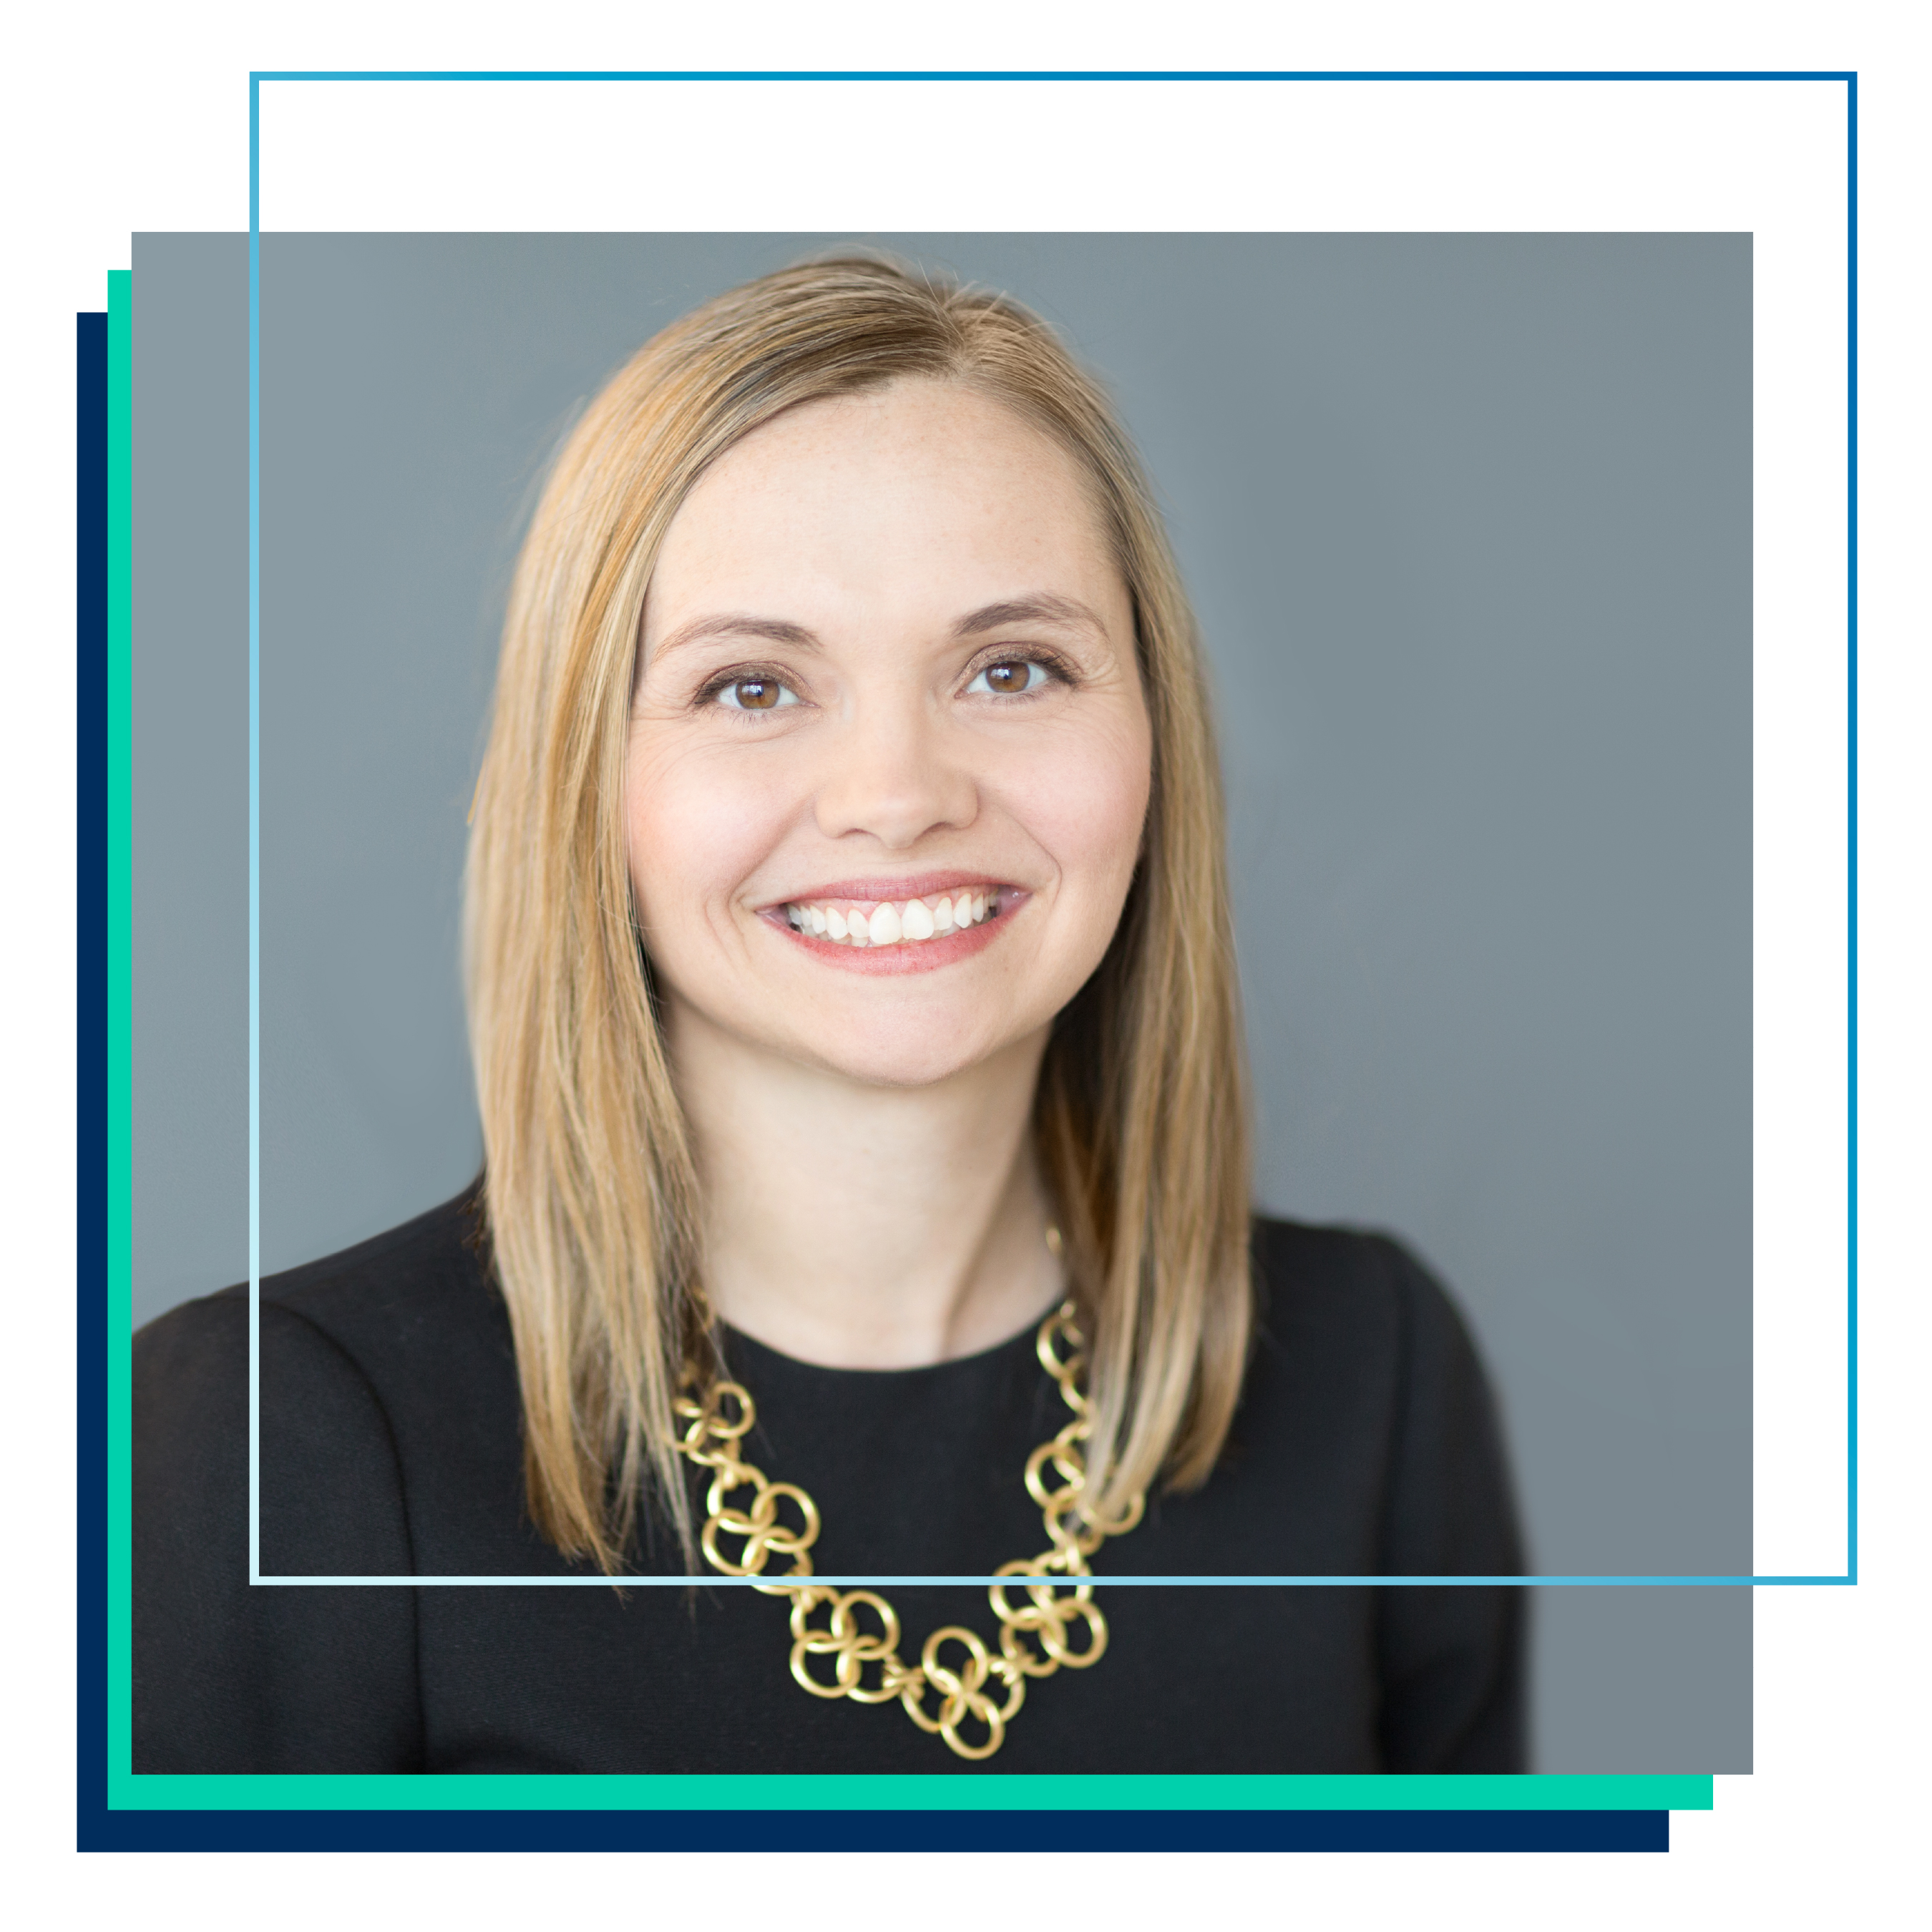 Deltek SVP & General Counsel, Tracy Schampers, will be this year's Deltek Insight host